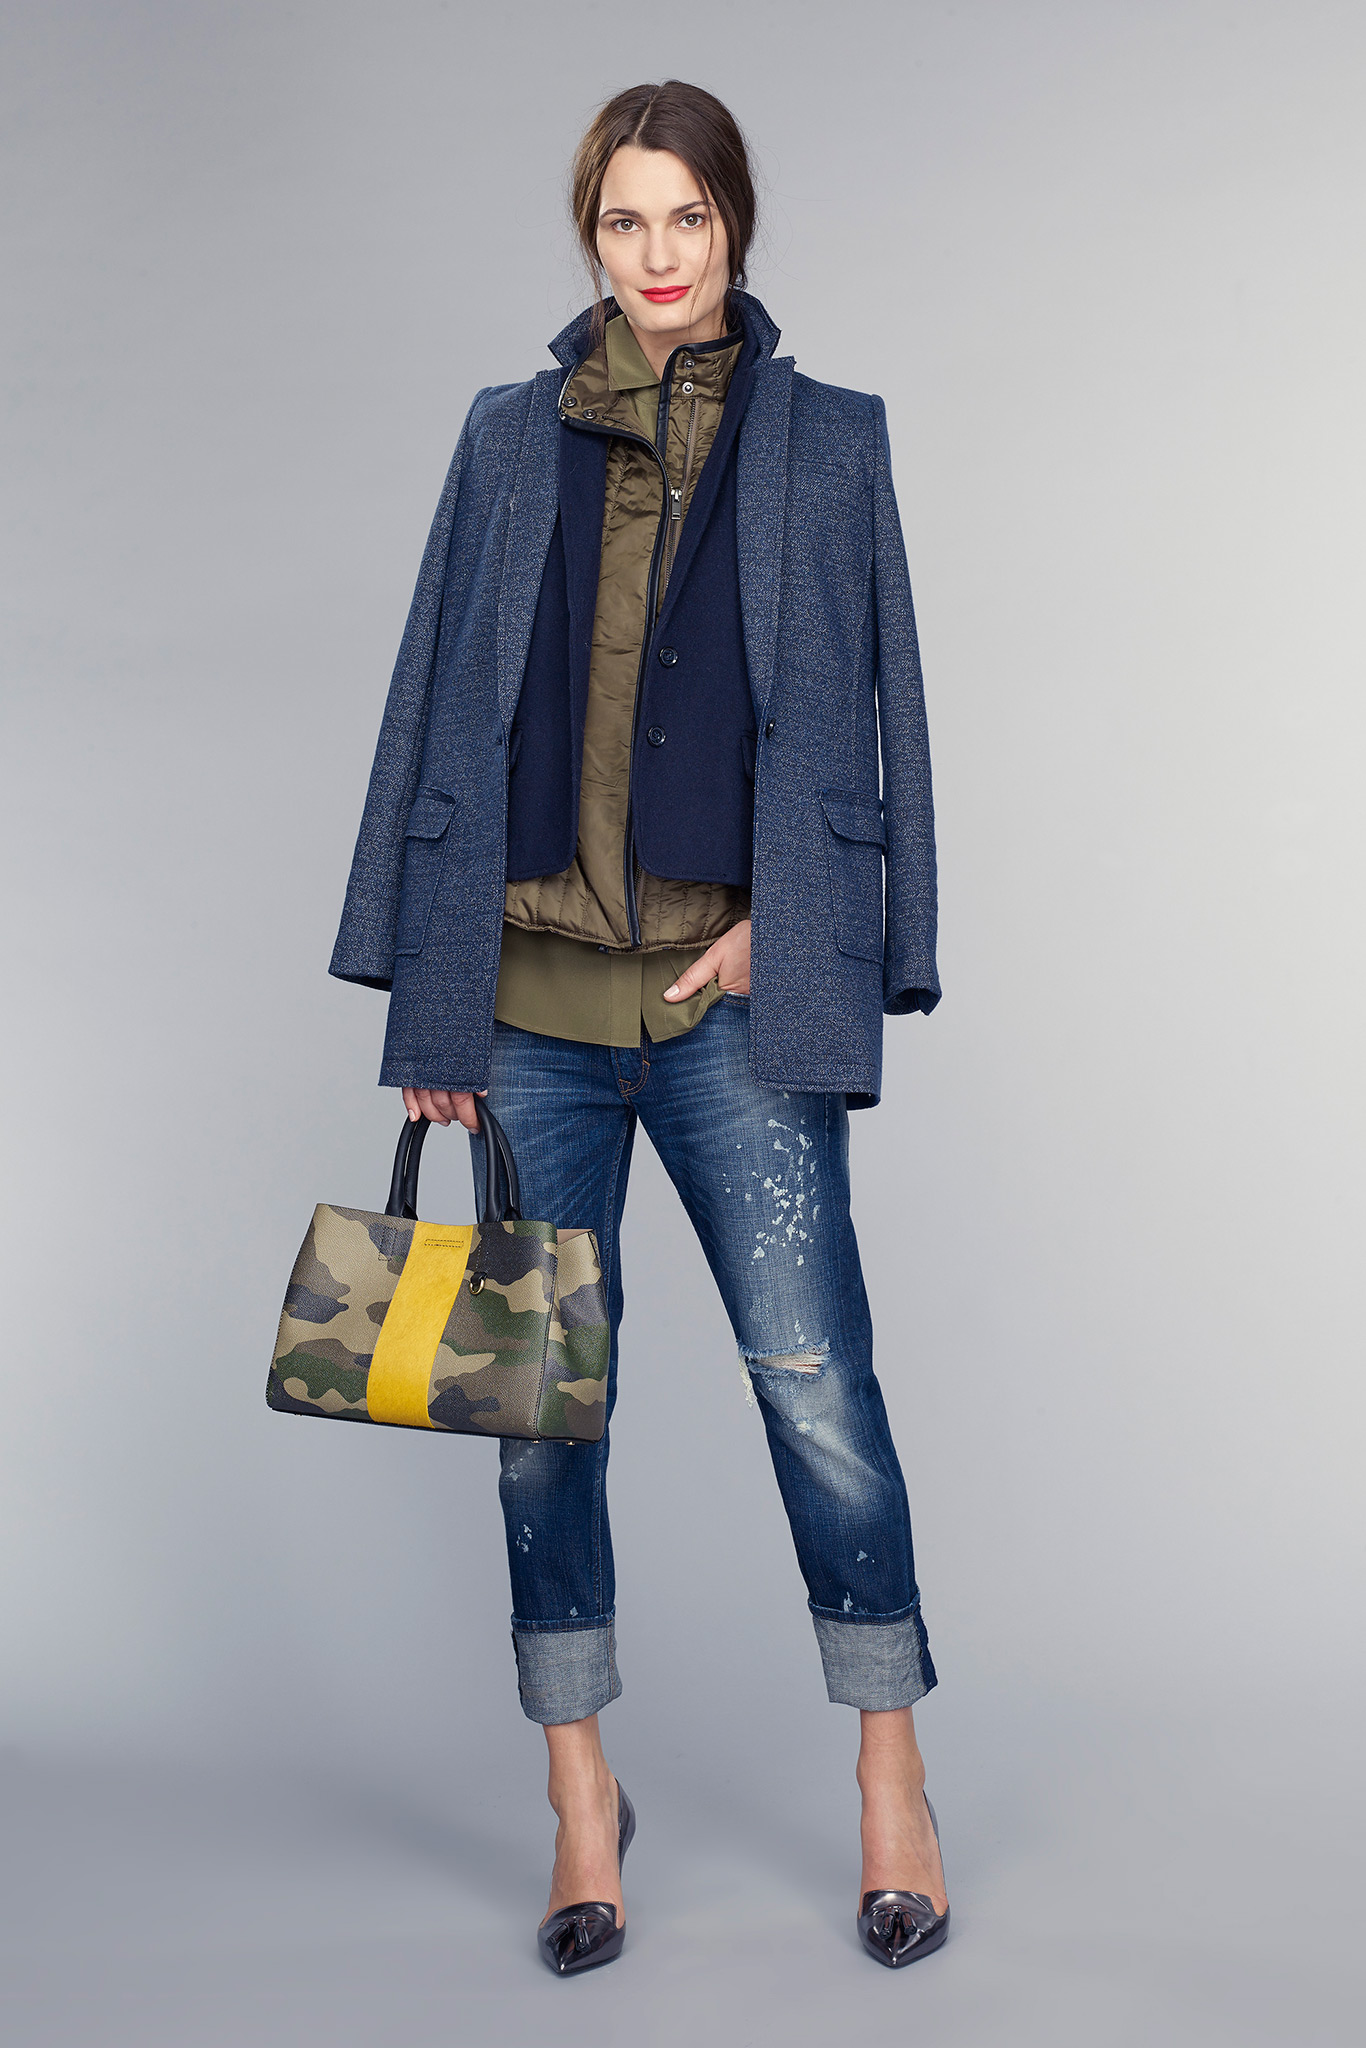 Banana-Republic-Fall-Winter-2015-2016-Womens-Collection-12